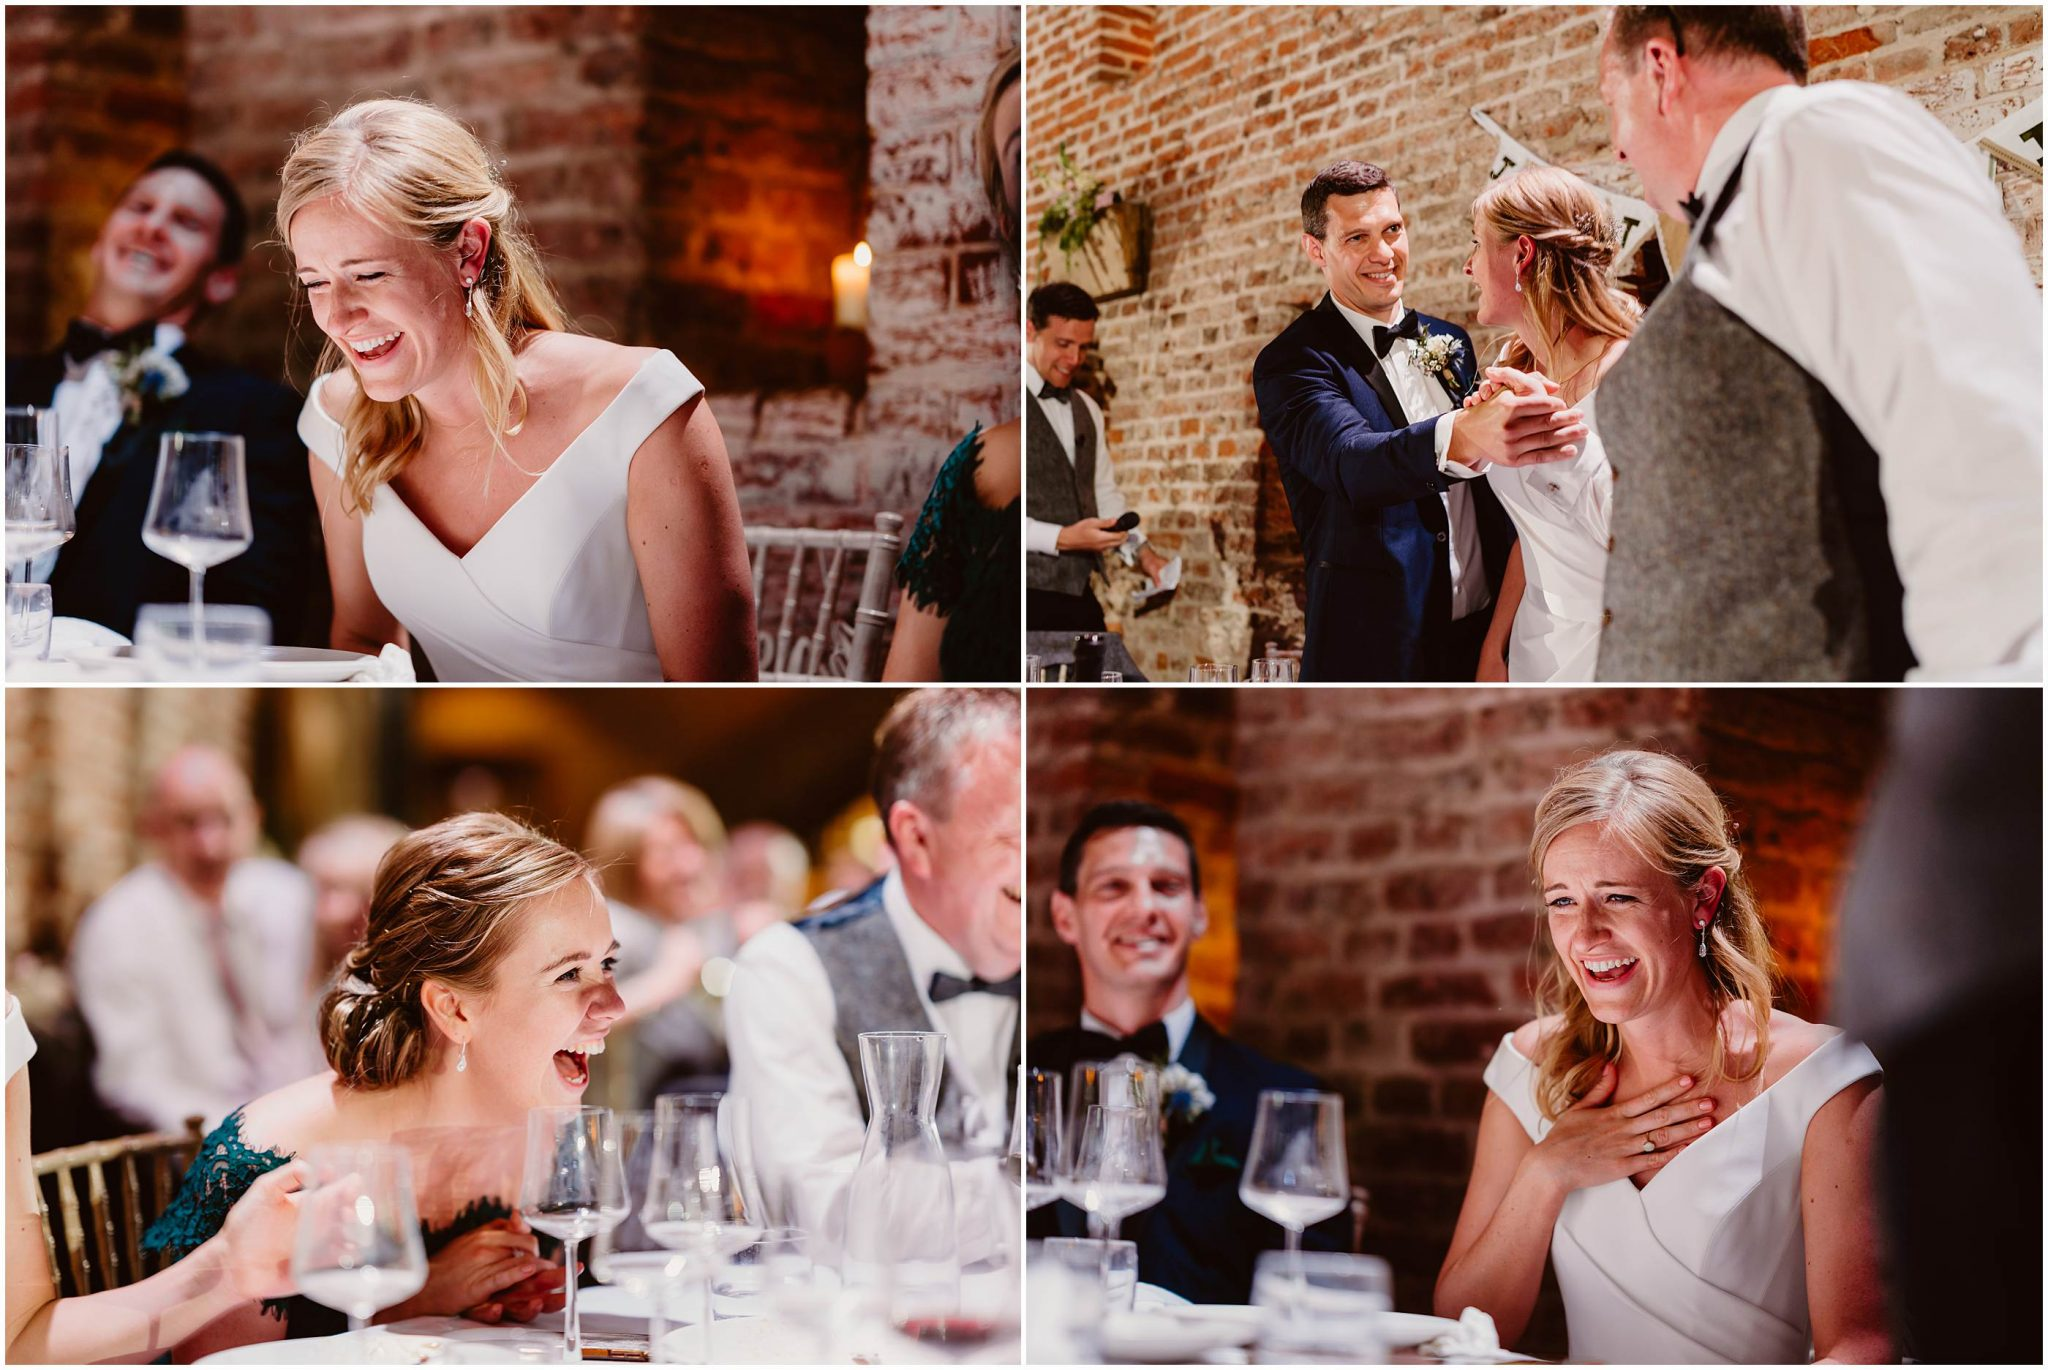 BRONAGH & ADAM'S HALES HALL BARN WEDDING - NORFOLK WEDDING PHOTOGRAPHER